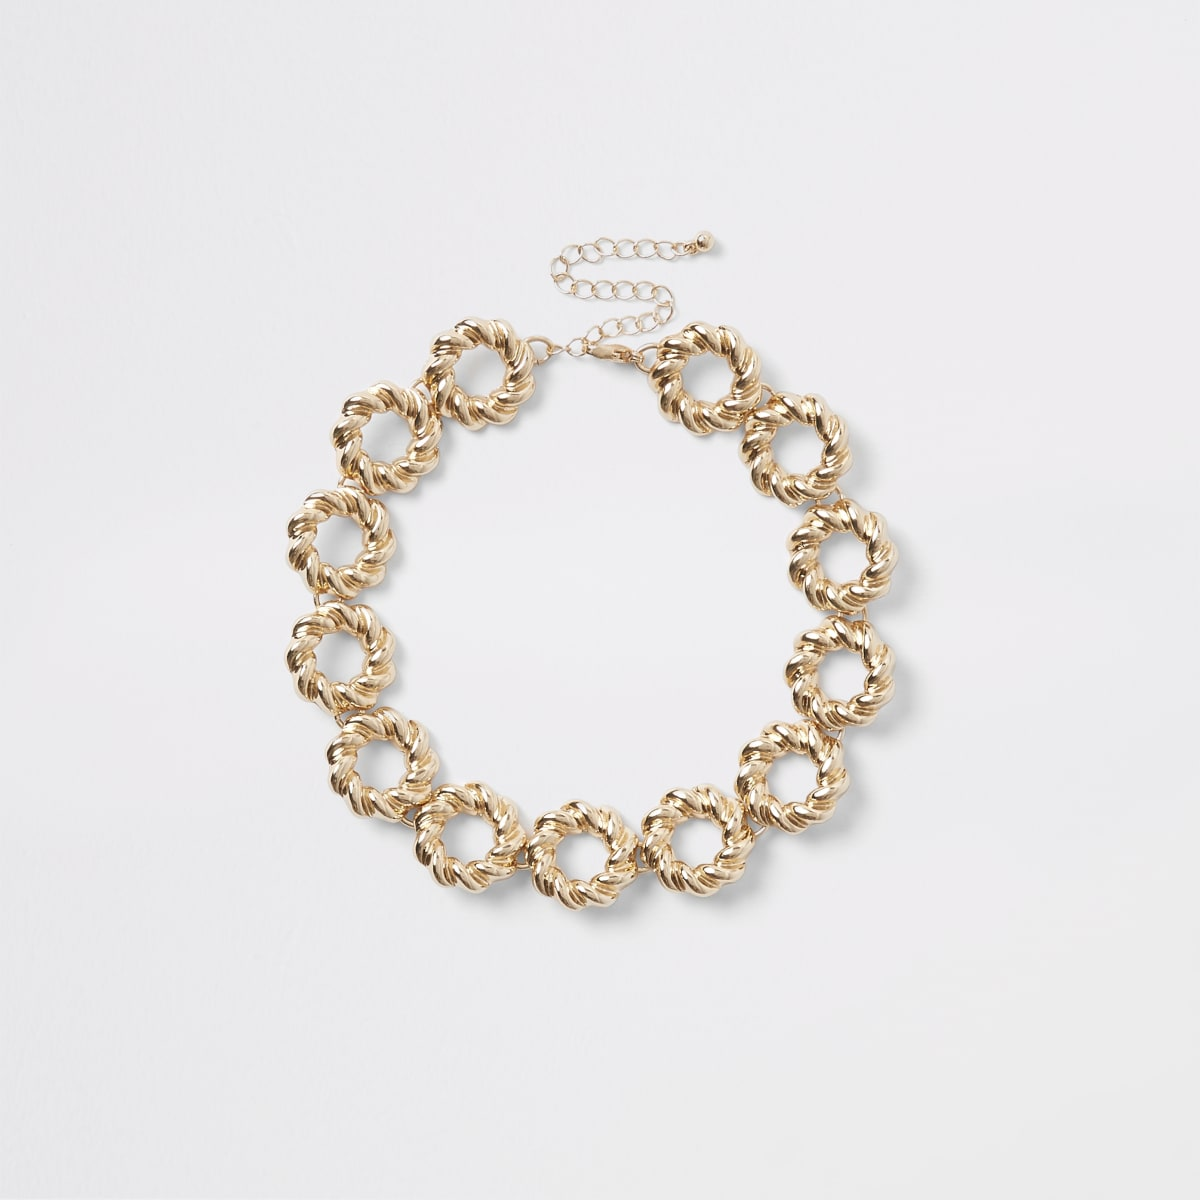 Gold color twisted ring choker